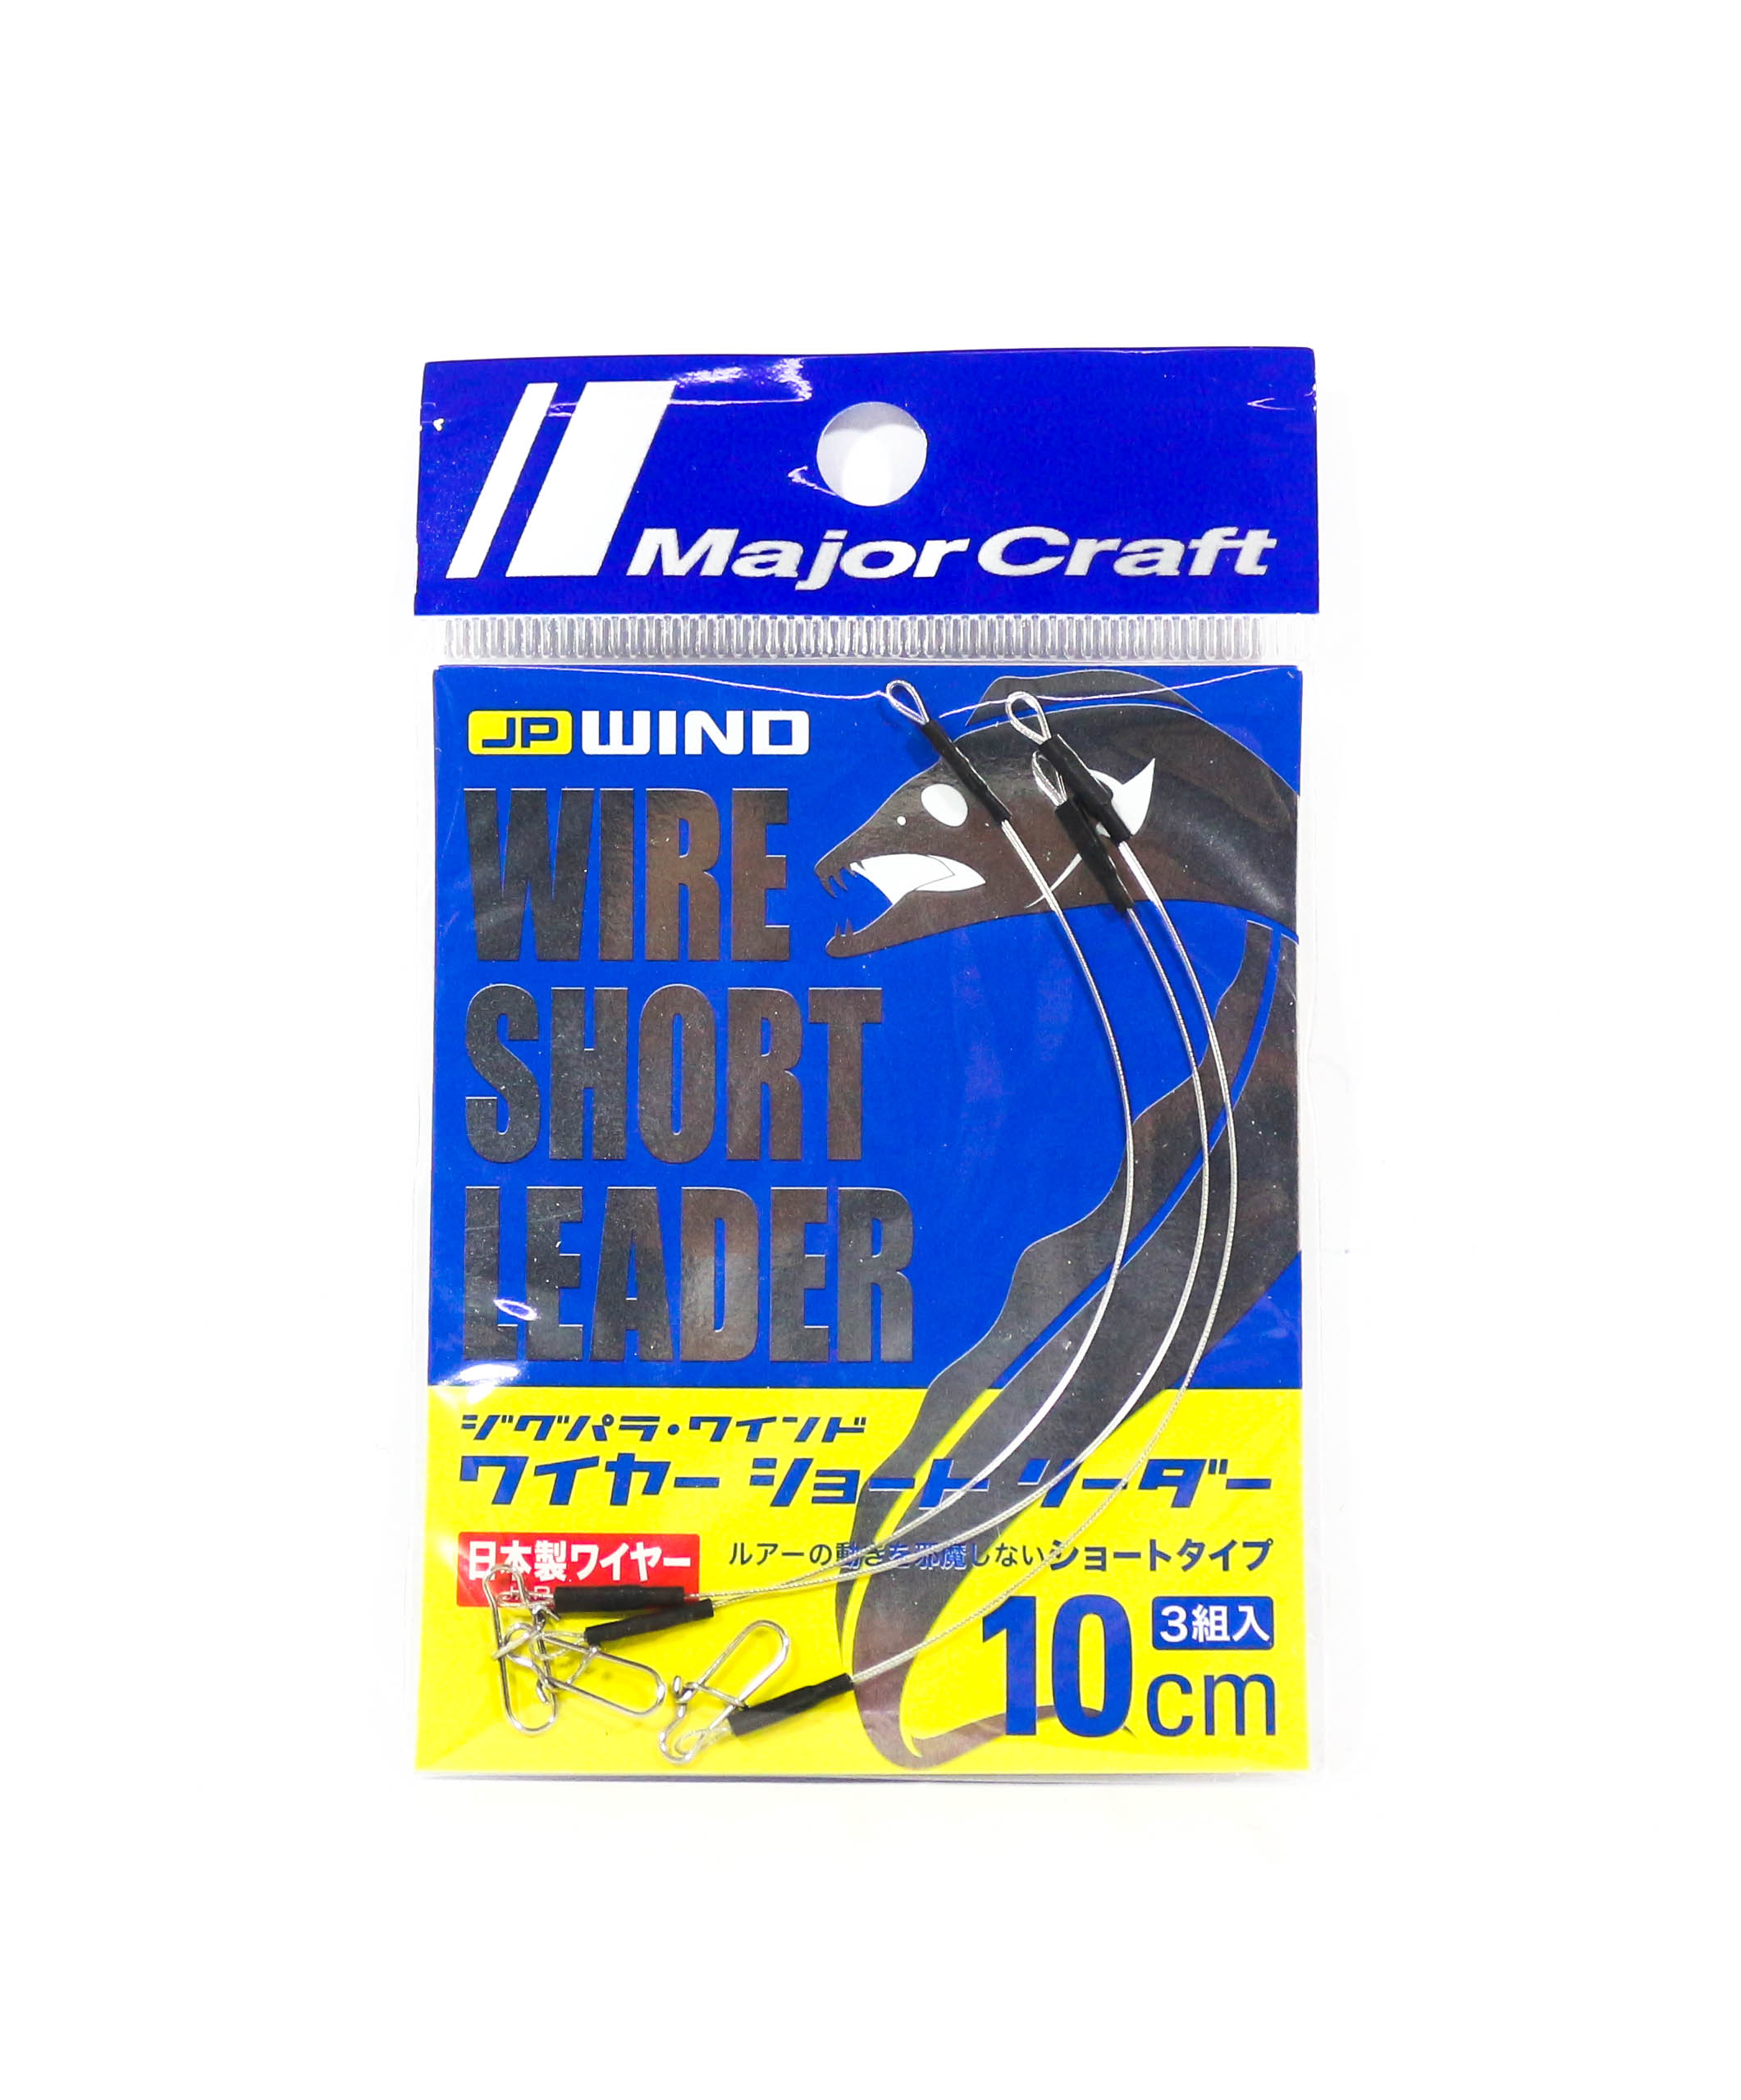 Major Craft Wind Wire Short Leader 10cm Size 1 Snap JPW-LEADER/10 (4862)